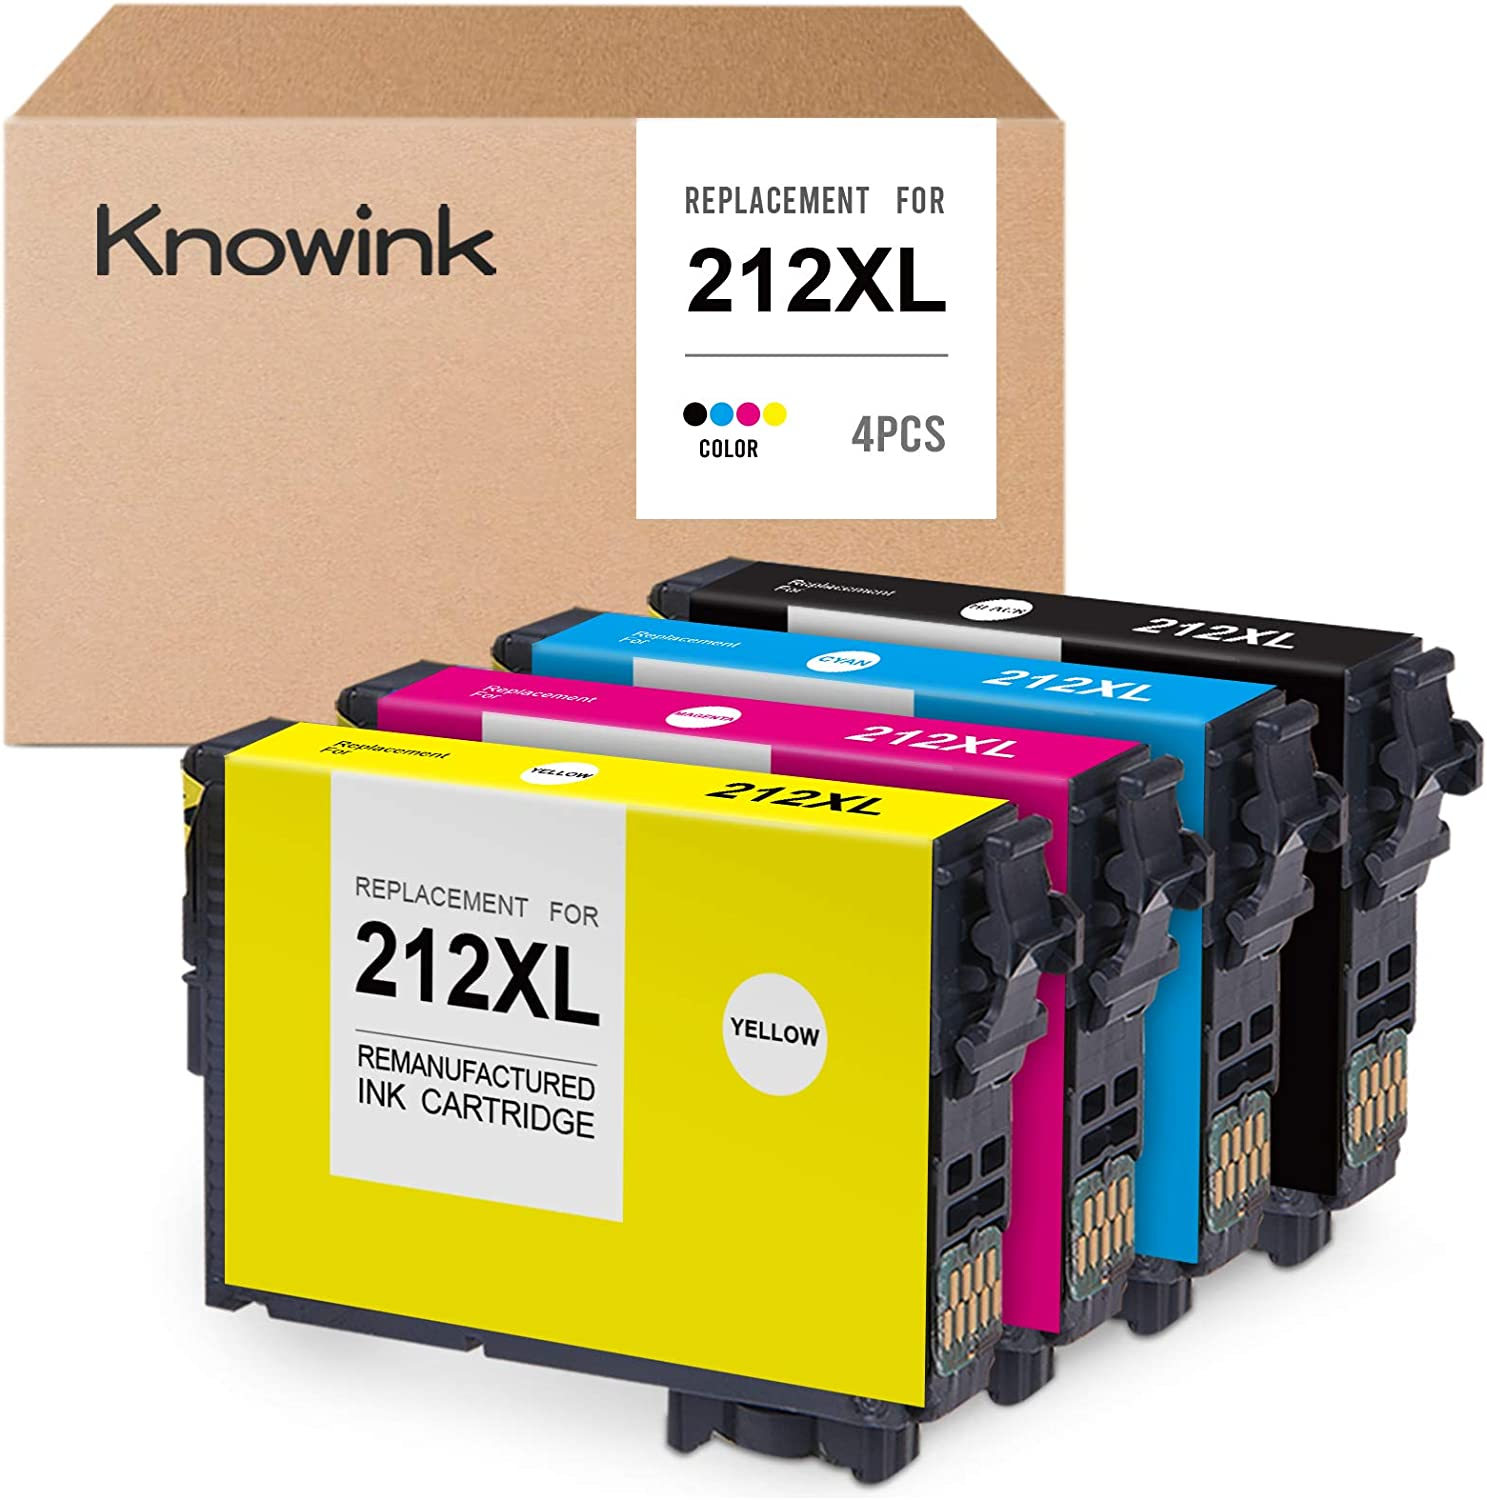 KNOWINK Remanufactured Ink Cartridge Replacement for Epson 212 212XL T212 T212XL for Expression Home XP-4100 XP-4105, Workforce WF-2830 WF-2850 AIO (1 Black, 1 Cyan, 1 Magenta, 1 Yellow, 4-Pack)